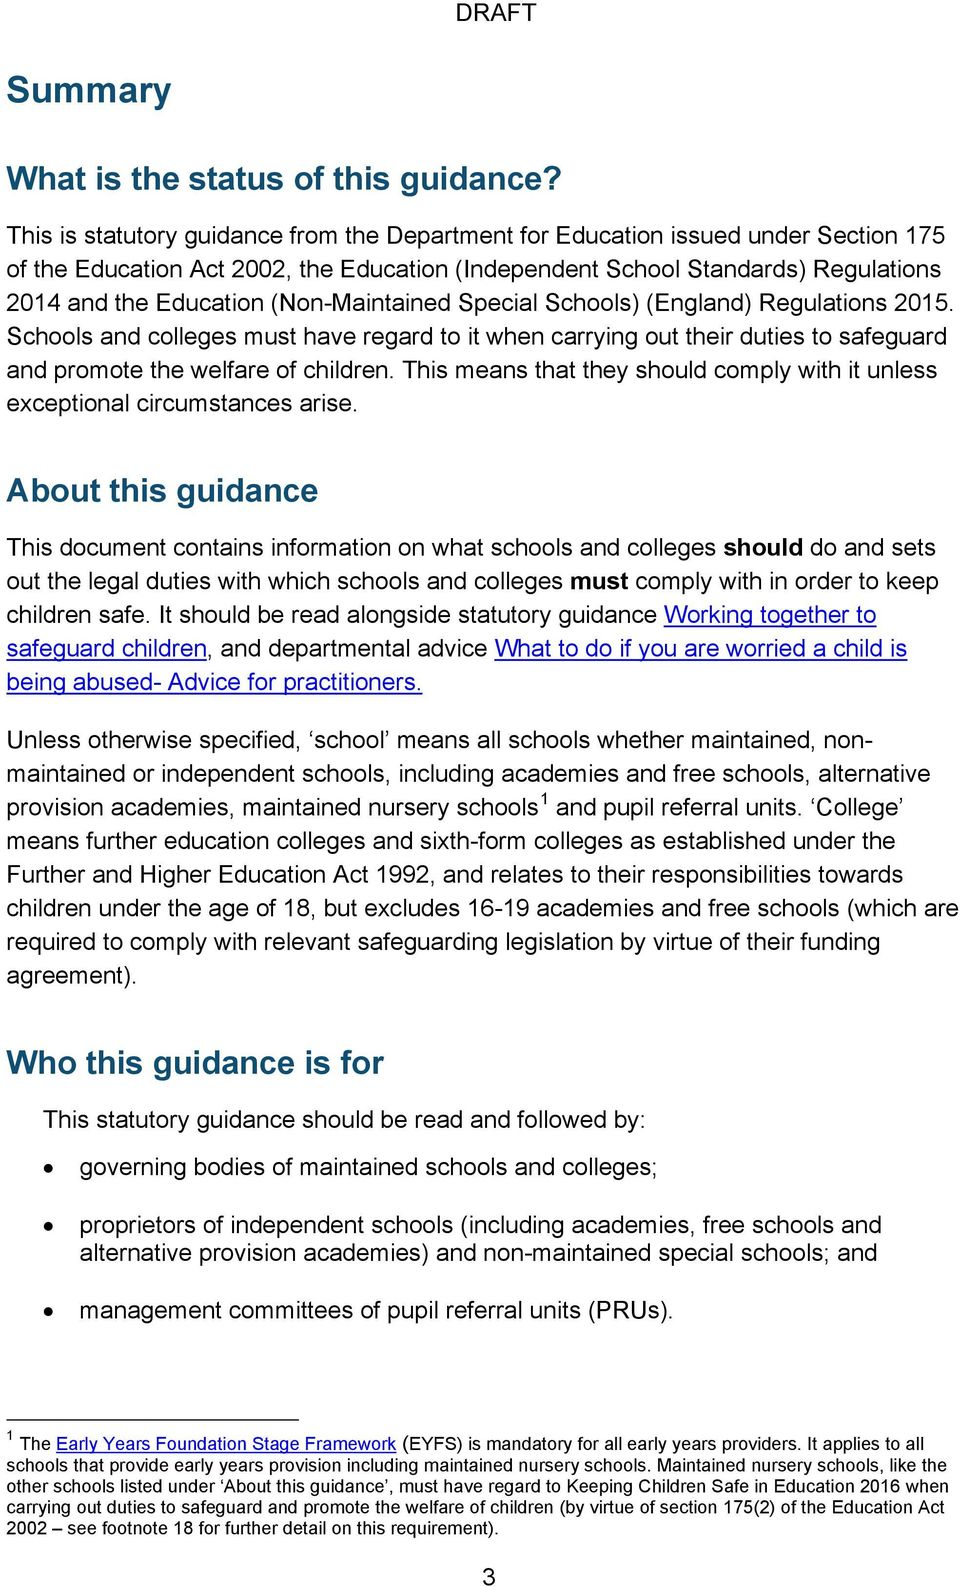 (Non-Maintained Special Schools) (England) Regulations 2015. Schools and colleges must have regard to it when carrying out their duties to safeguard and promote the welfare of children.